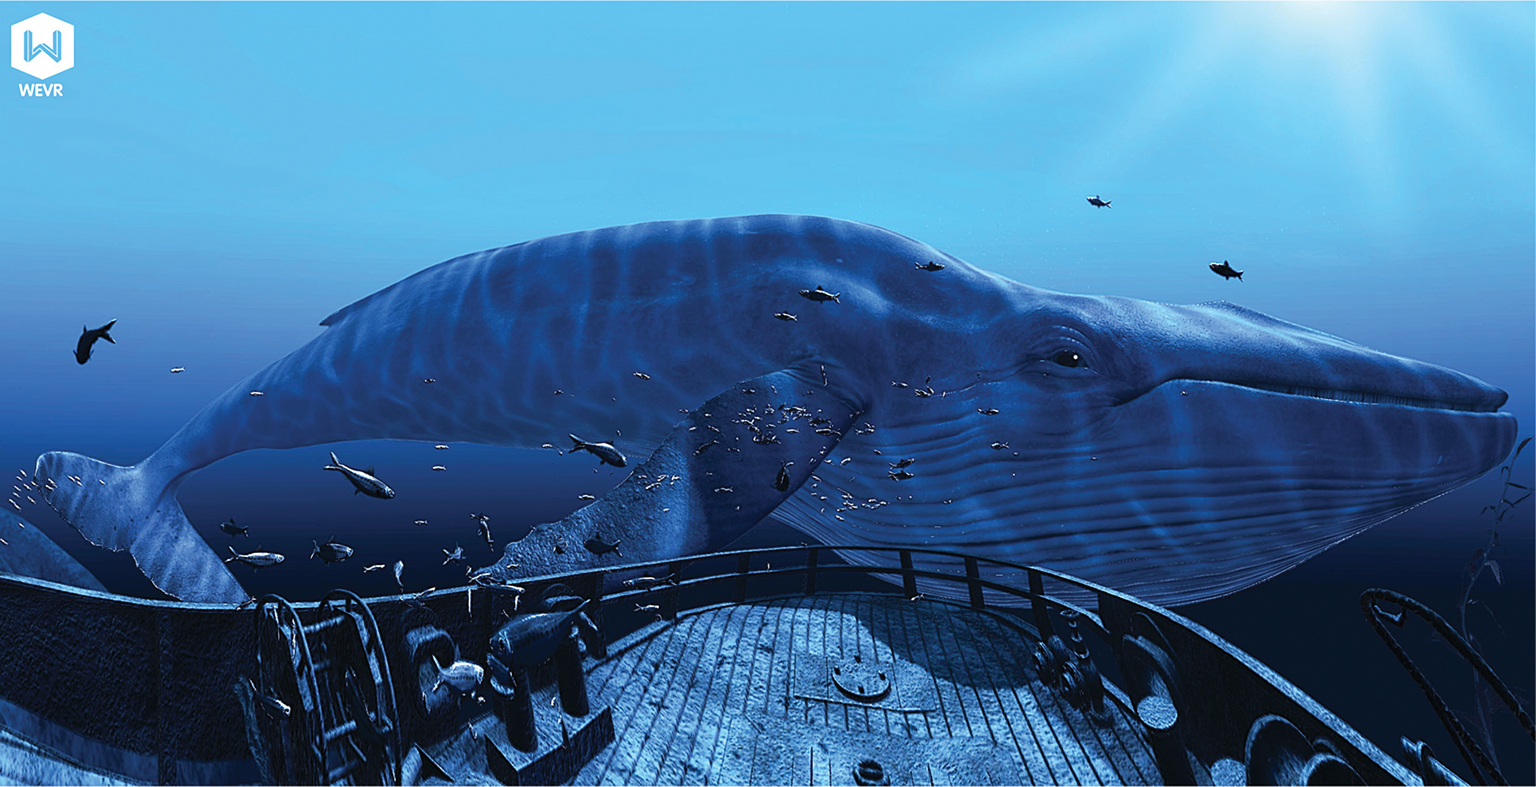 "From TheBlu: Encounter by WEVR. ""Imagine coming face-to-face with an 80-foot blue whale, whose eye ball is almost the size of your entire face"". See wevr.com"